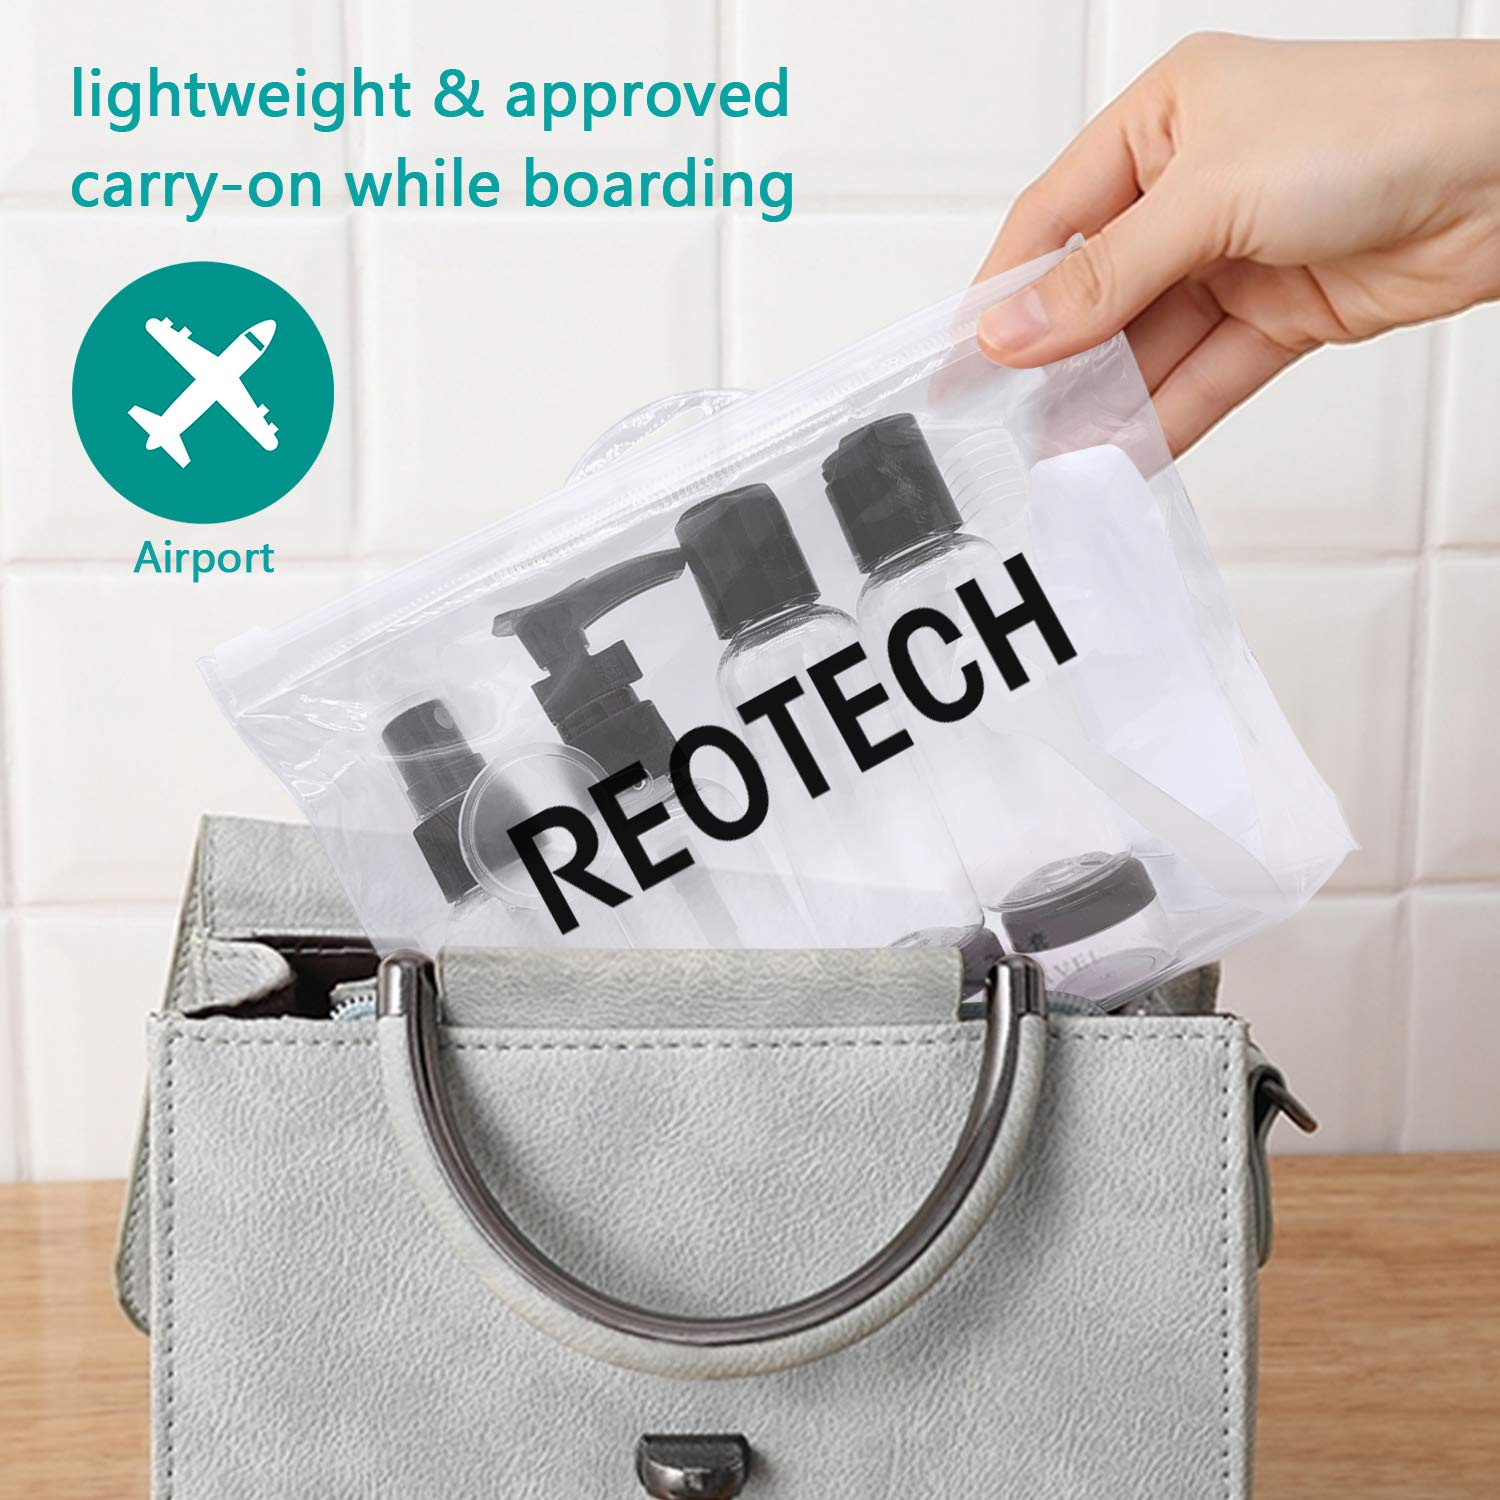 REOTECH Travel Bottles & TSA Approved Toiletry Bag Clear Quart Size with Leak-Proof Travel Accessories & Refillable Containers for Liquids 3-1-1 Carry-On Luggage Compliant for Airplane - Woman & Man